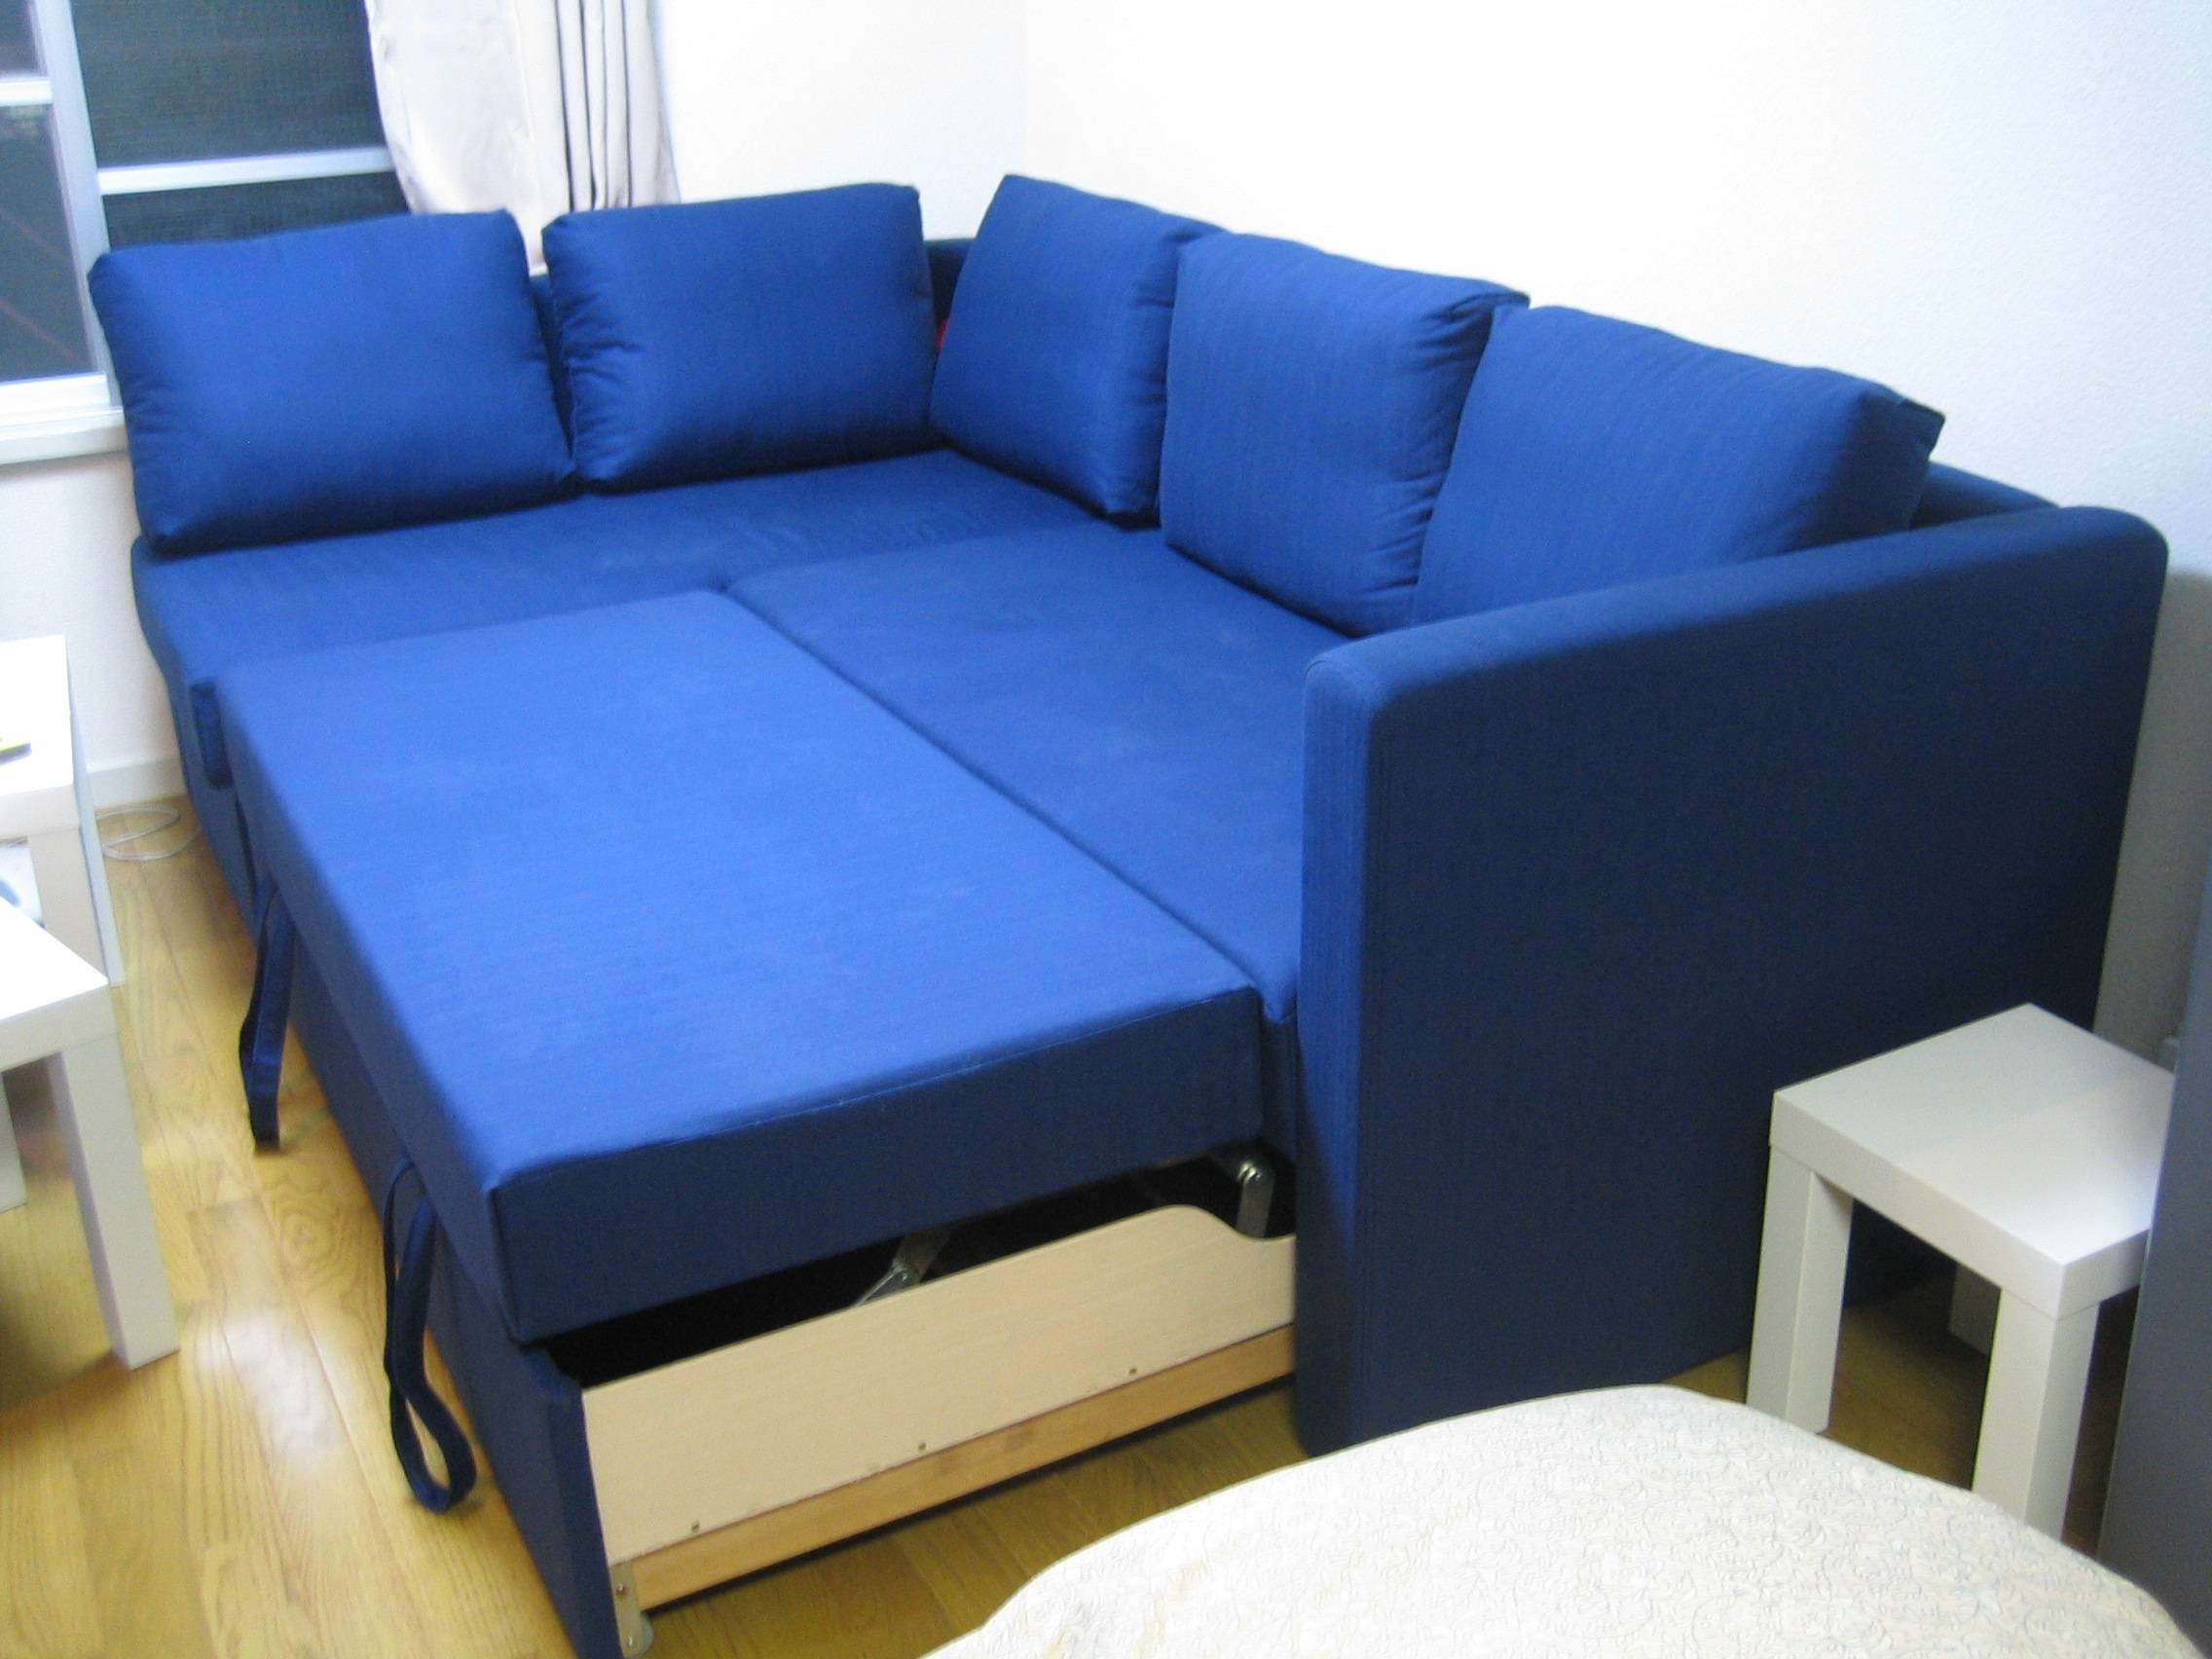 Furniture: Ikea Kivik Sofa Bed | Ikea Sofa Beds | Ikea Leather pertaining to Cushion Sofa Beds (Image 10 of 30)